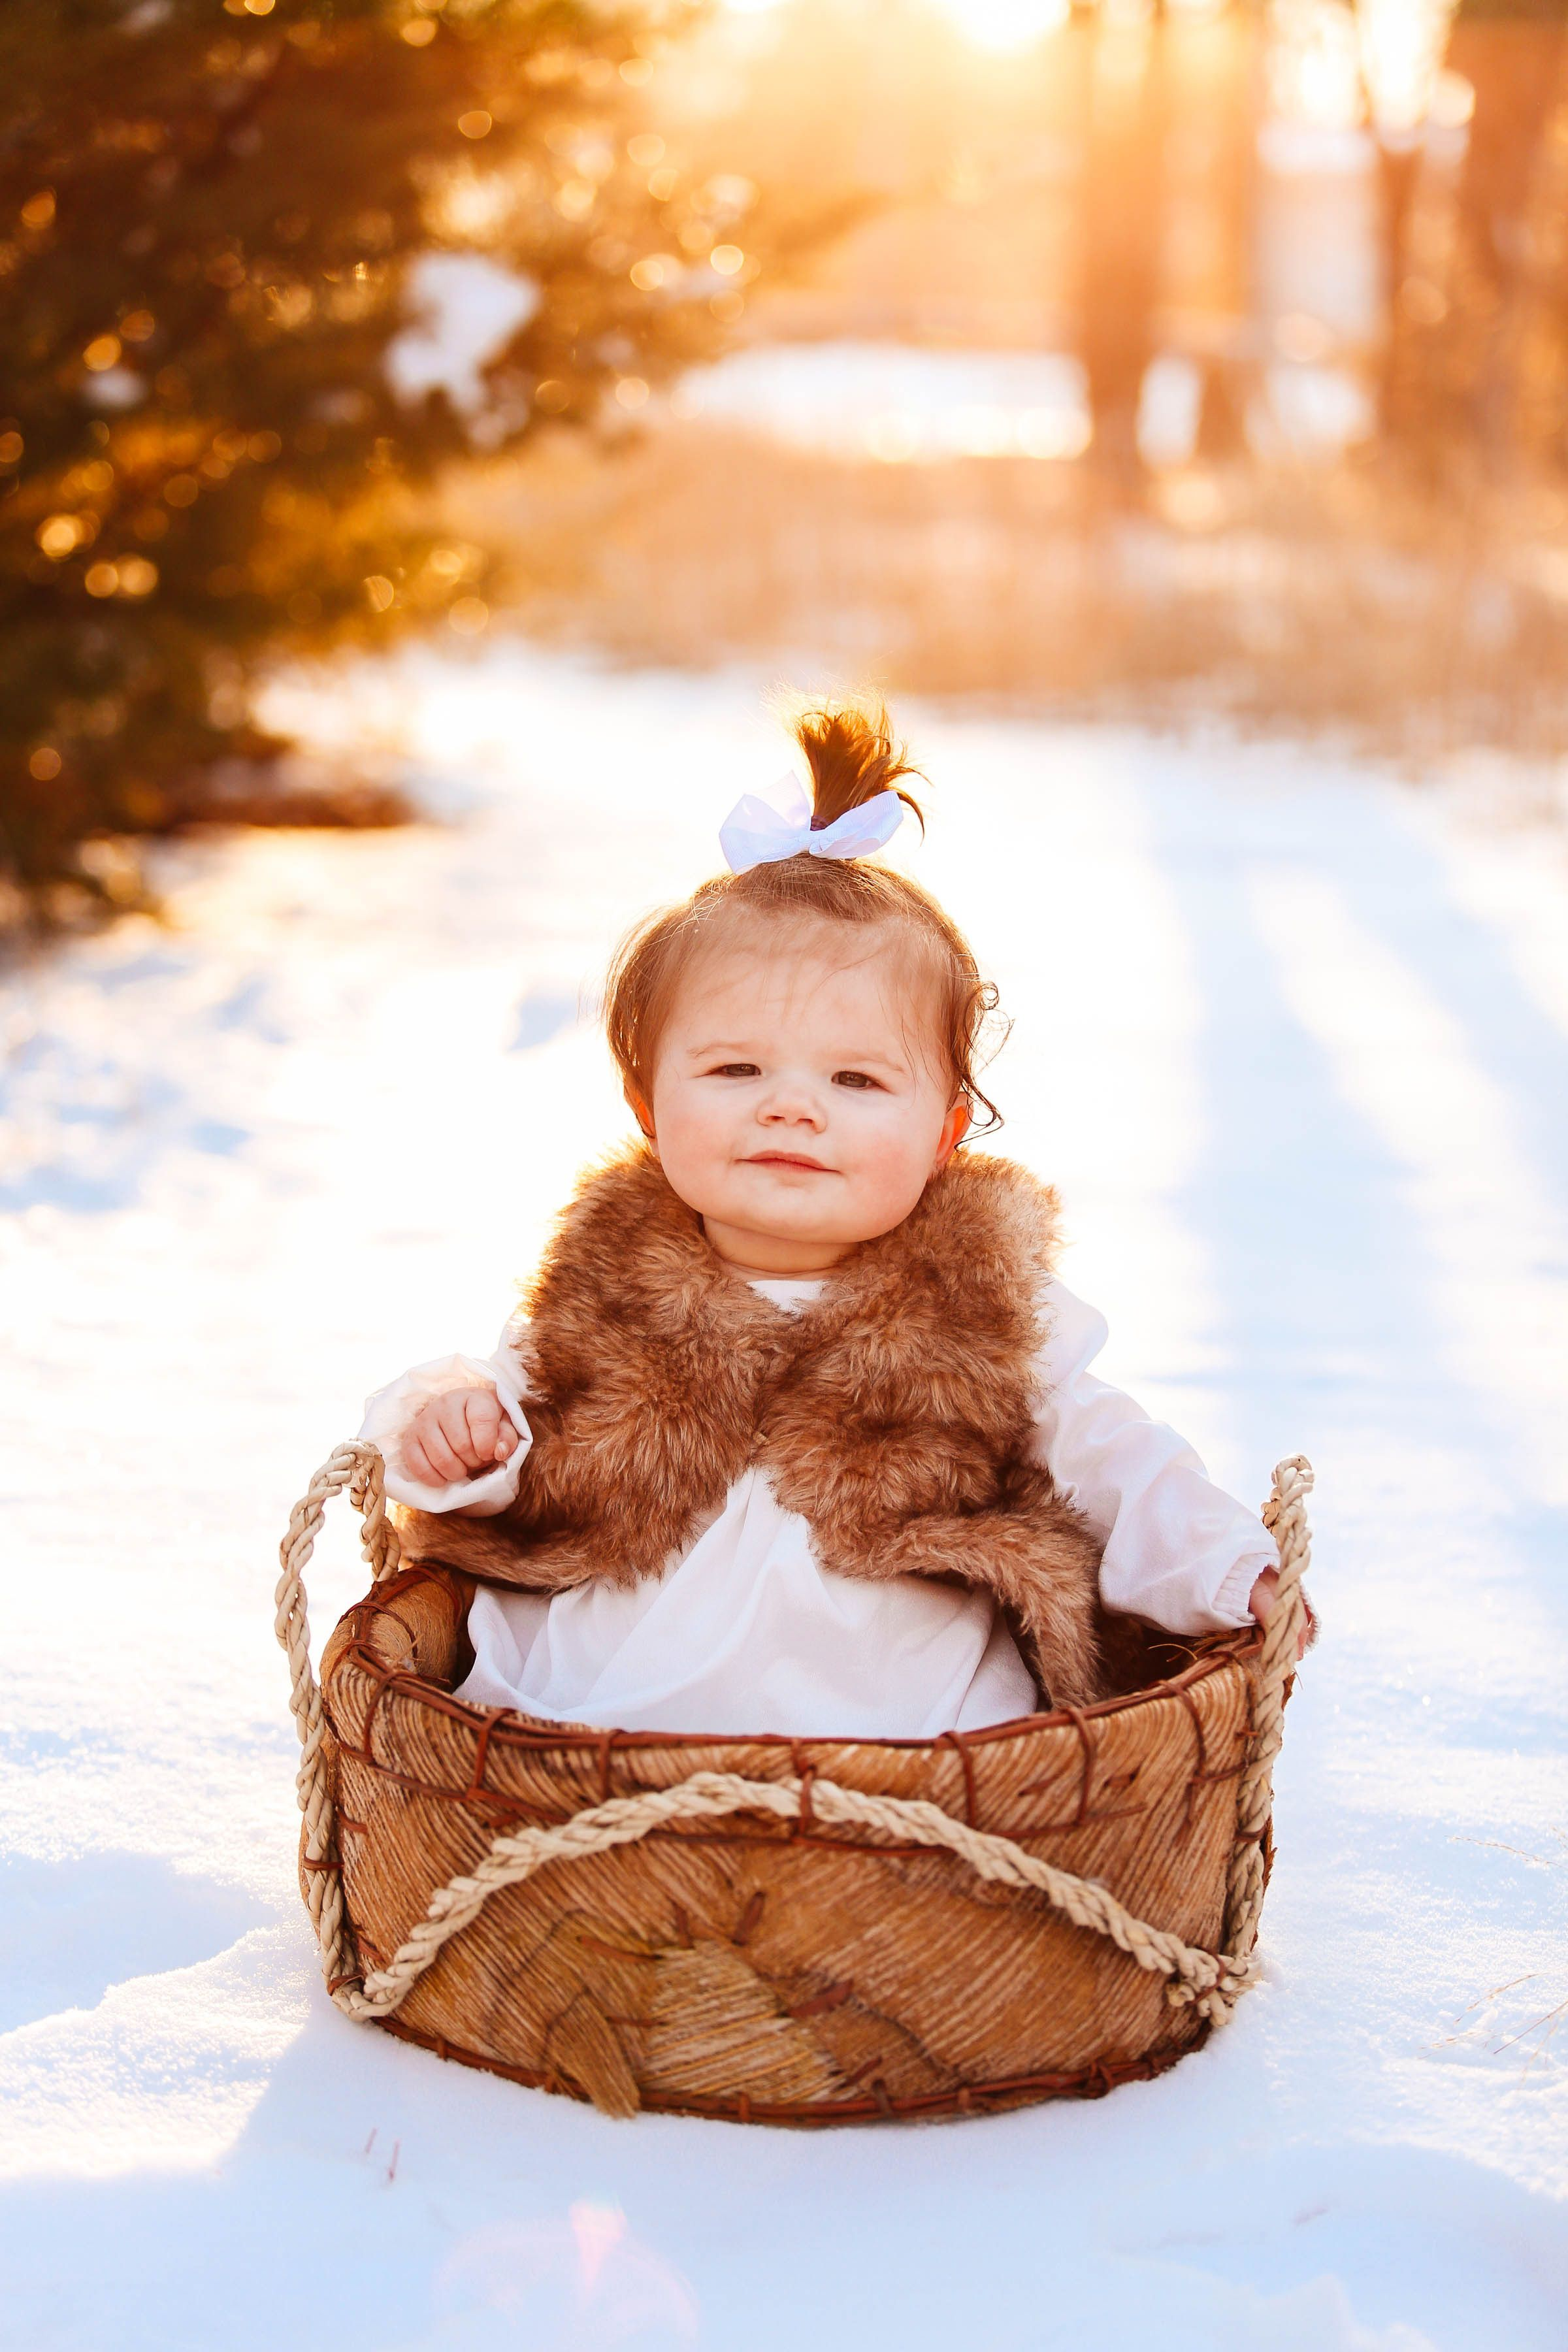 Baby Photos Baby Pictures Snow Baby Pictures Snow Baby Photos Nine Month Old Baby Photos 9 Month Baby Snow Baby Pictures Baby Month By Month Baby In Snow